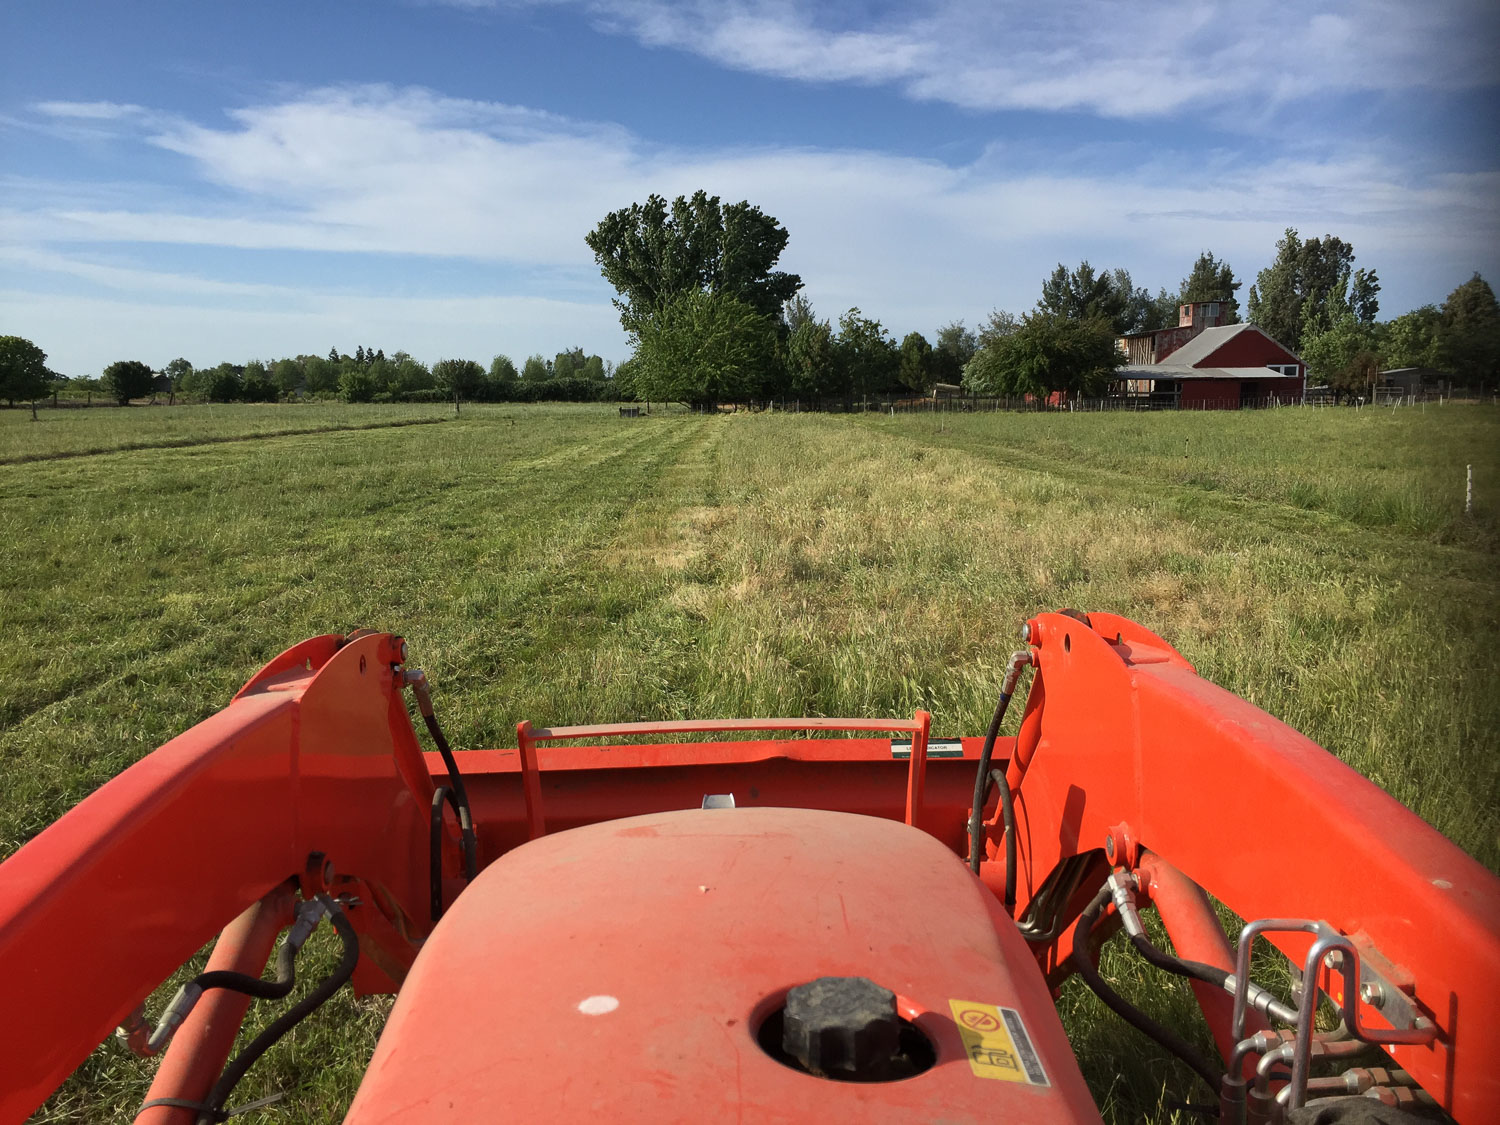 Driving the tractor while mowing.